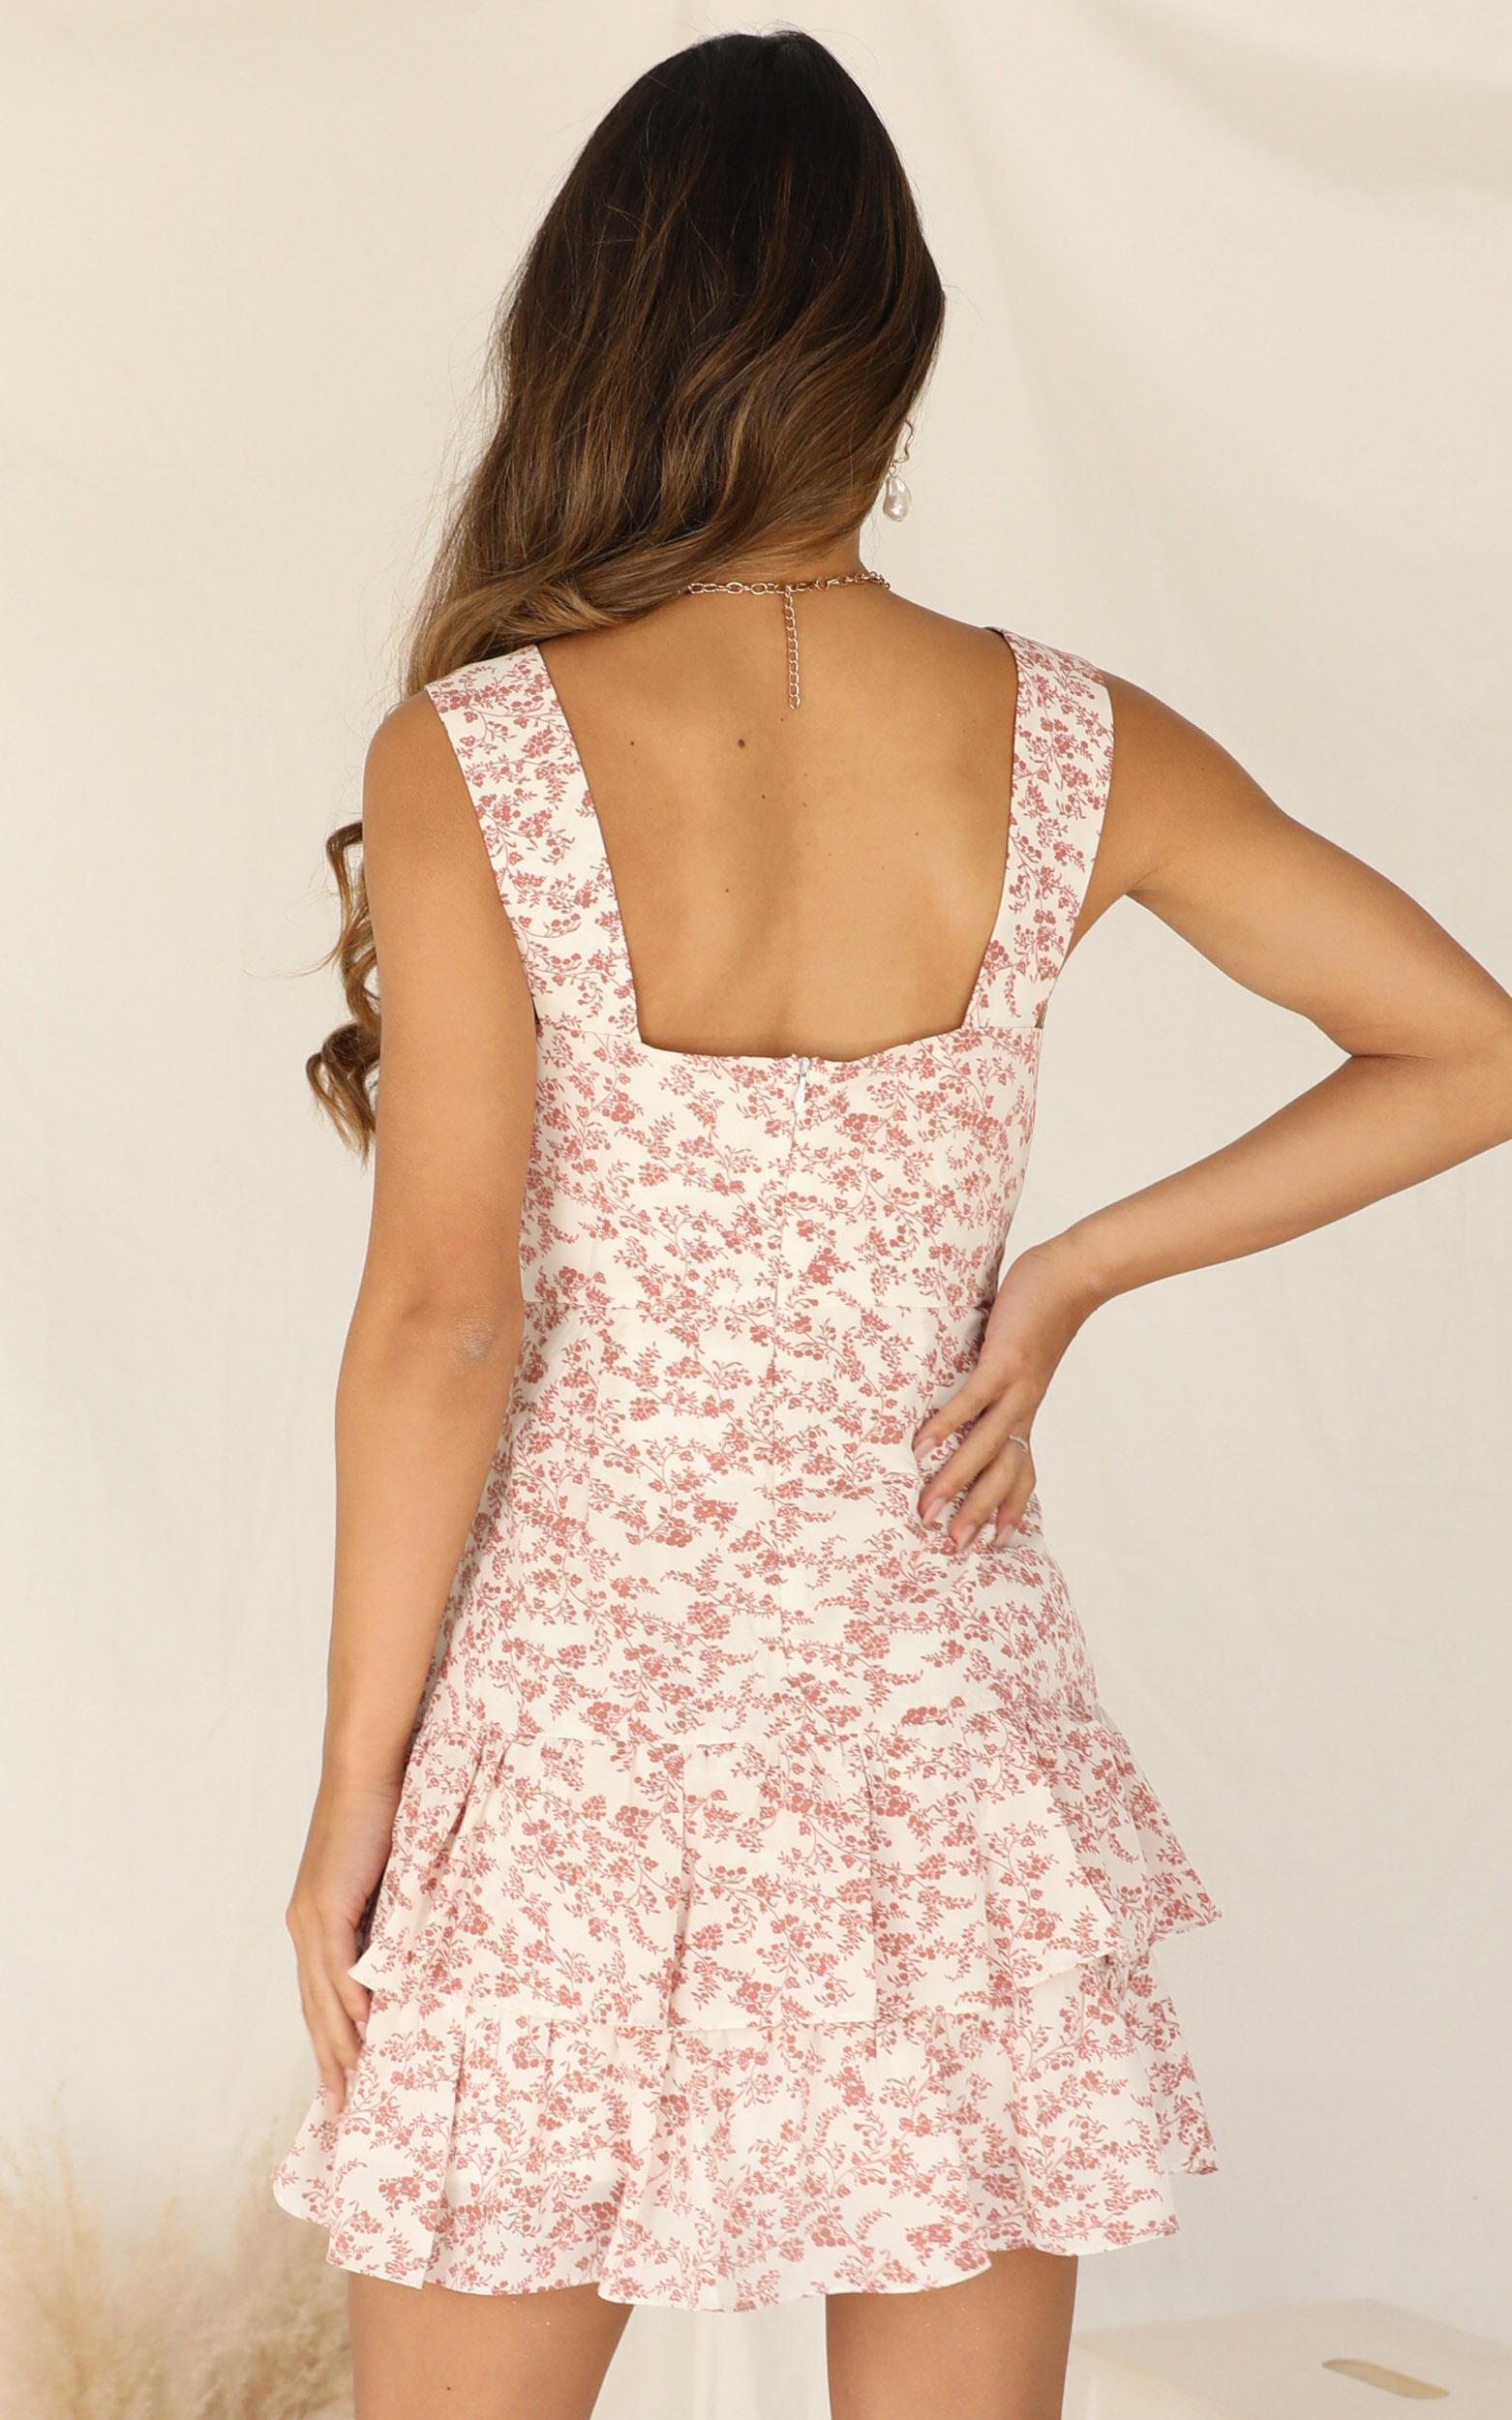 We Made It Dress In Peach Floral - 16 (XXL), Pink, hi-res image number null